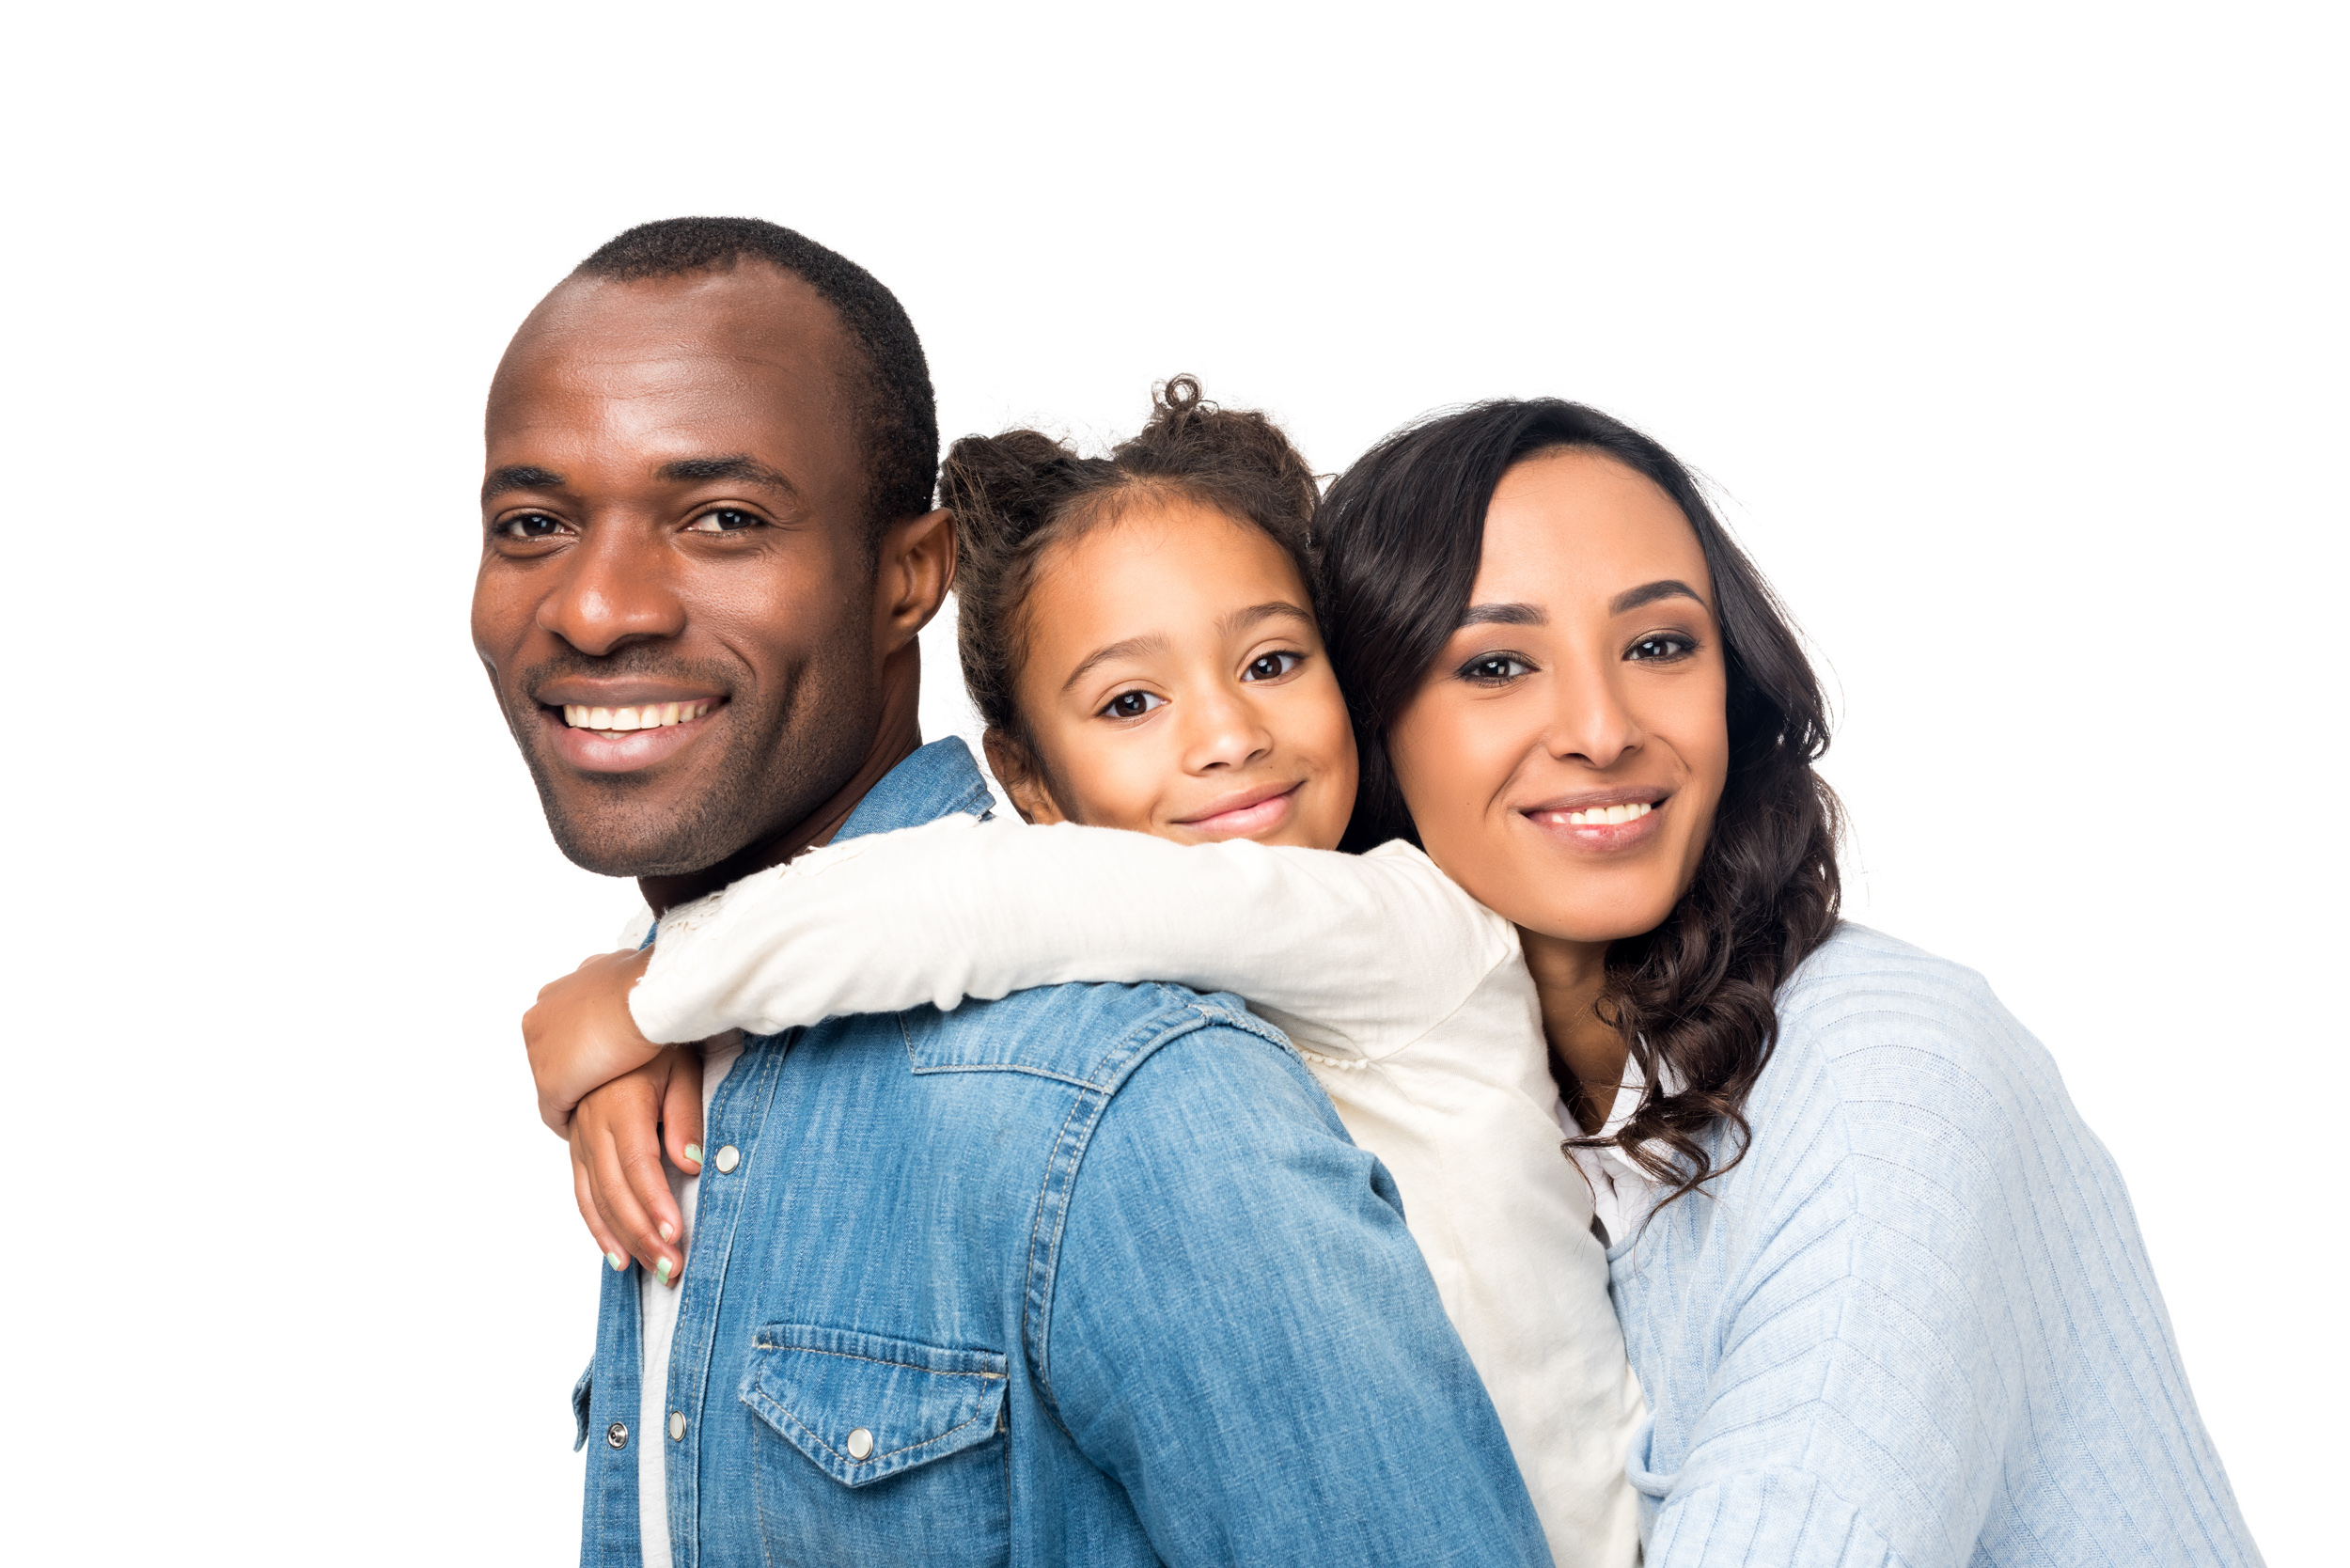 Moss Family Dentistry provides dental care for the whole family